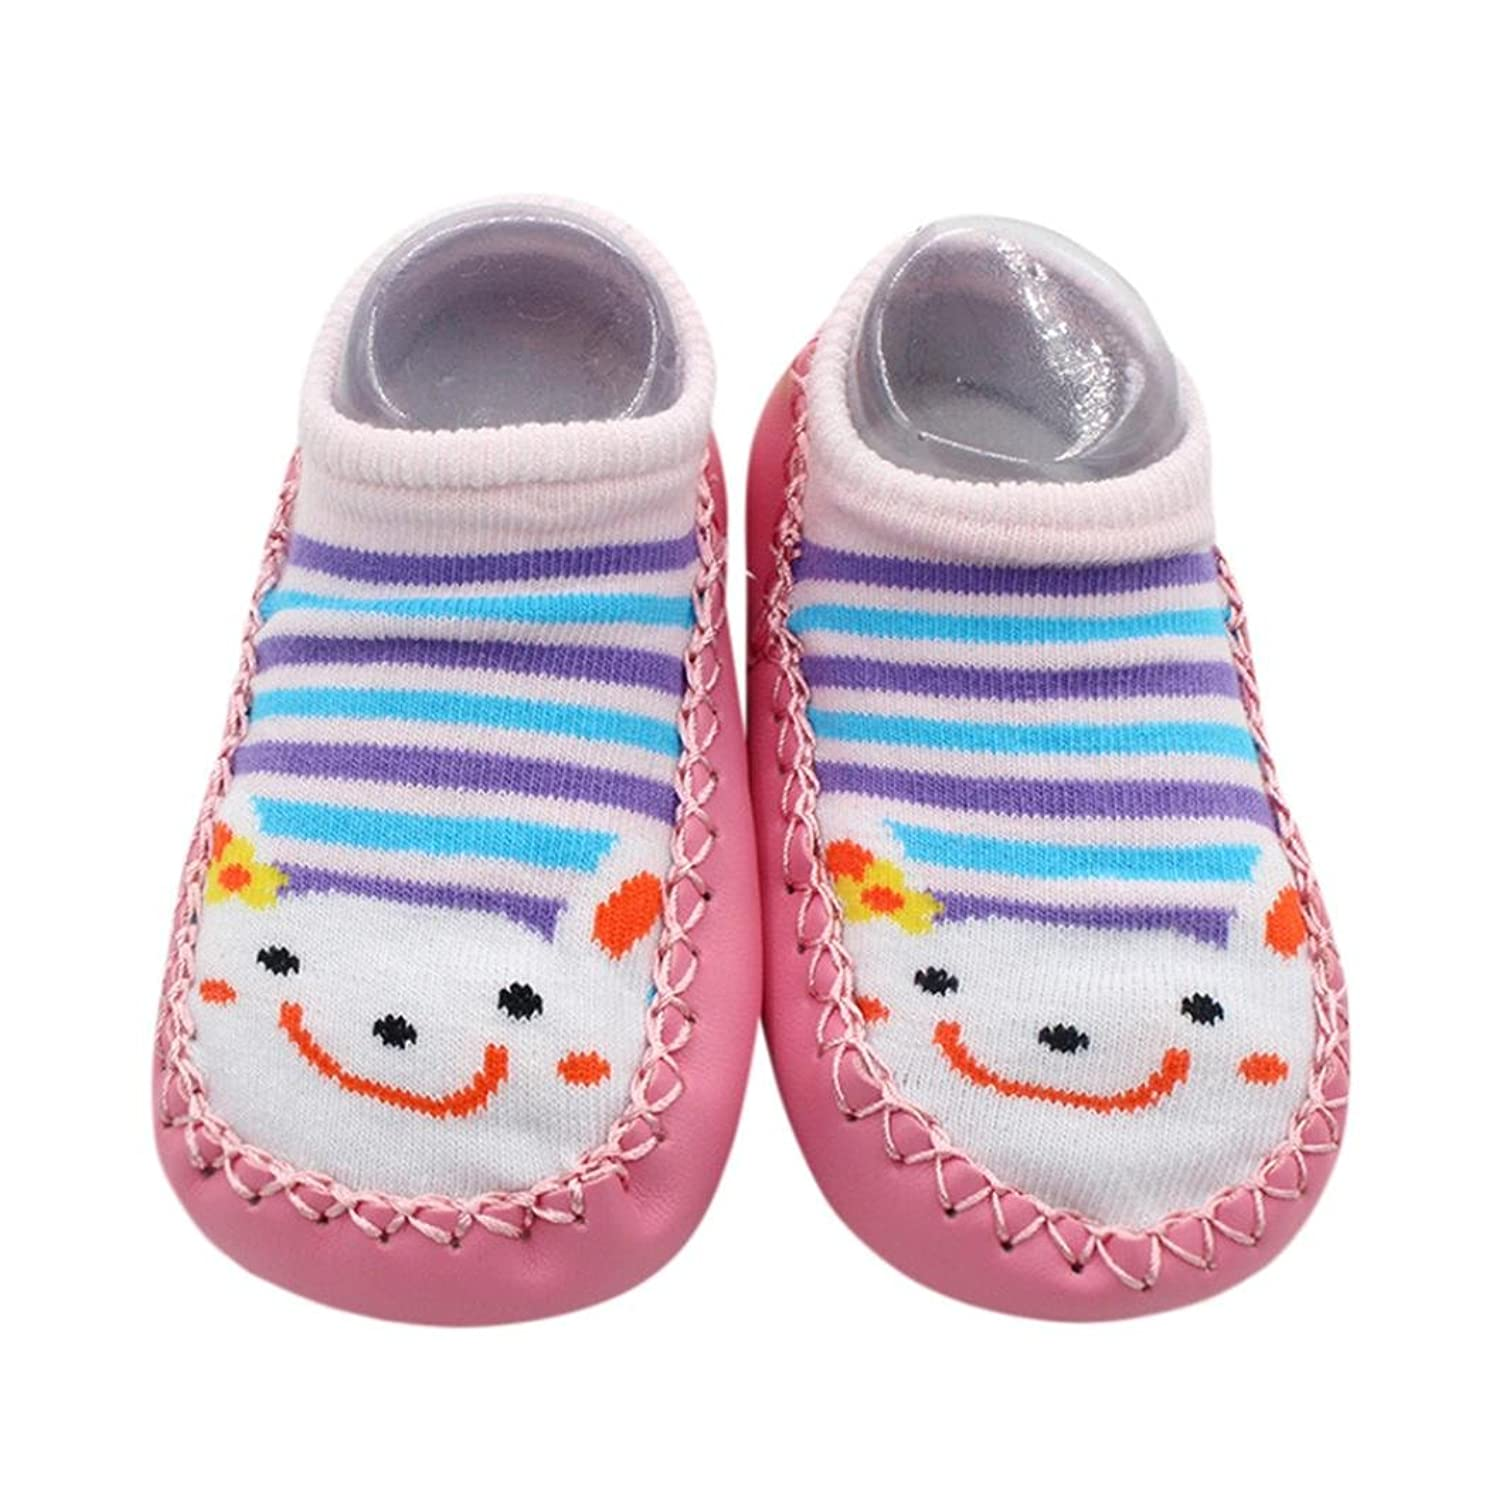 Dreamyth Cartoon Newborn Baby Girls Boys Anti Slip Socks Leather